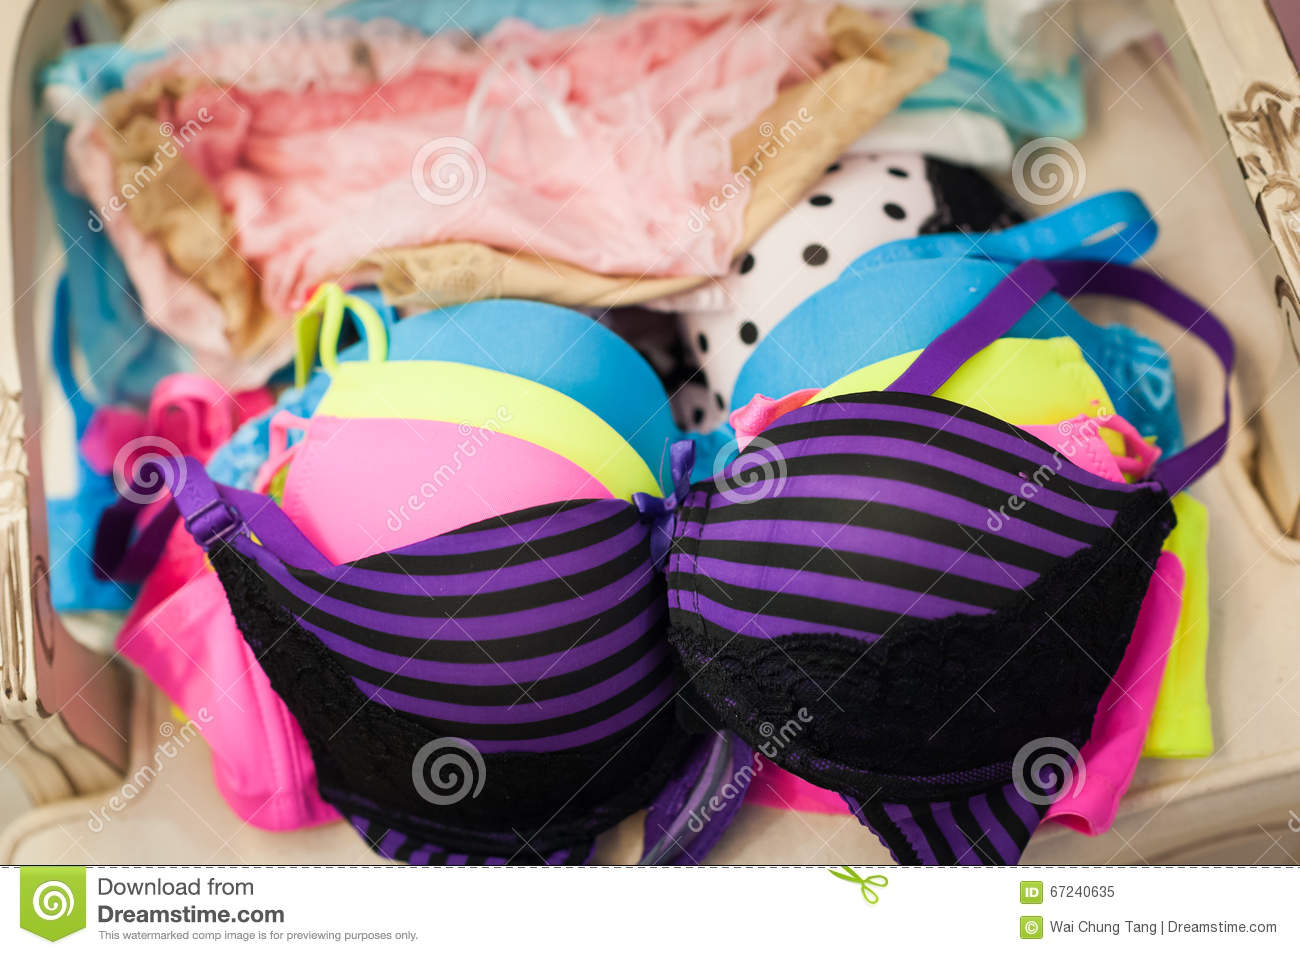 f110cb57d4 Bra and panty lingerie stock image. Image of color